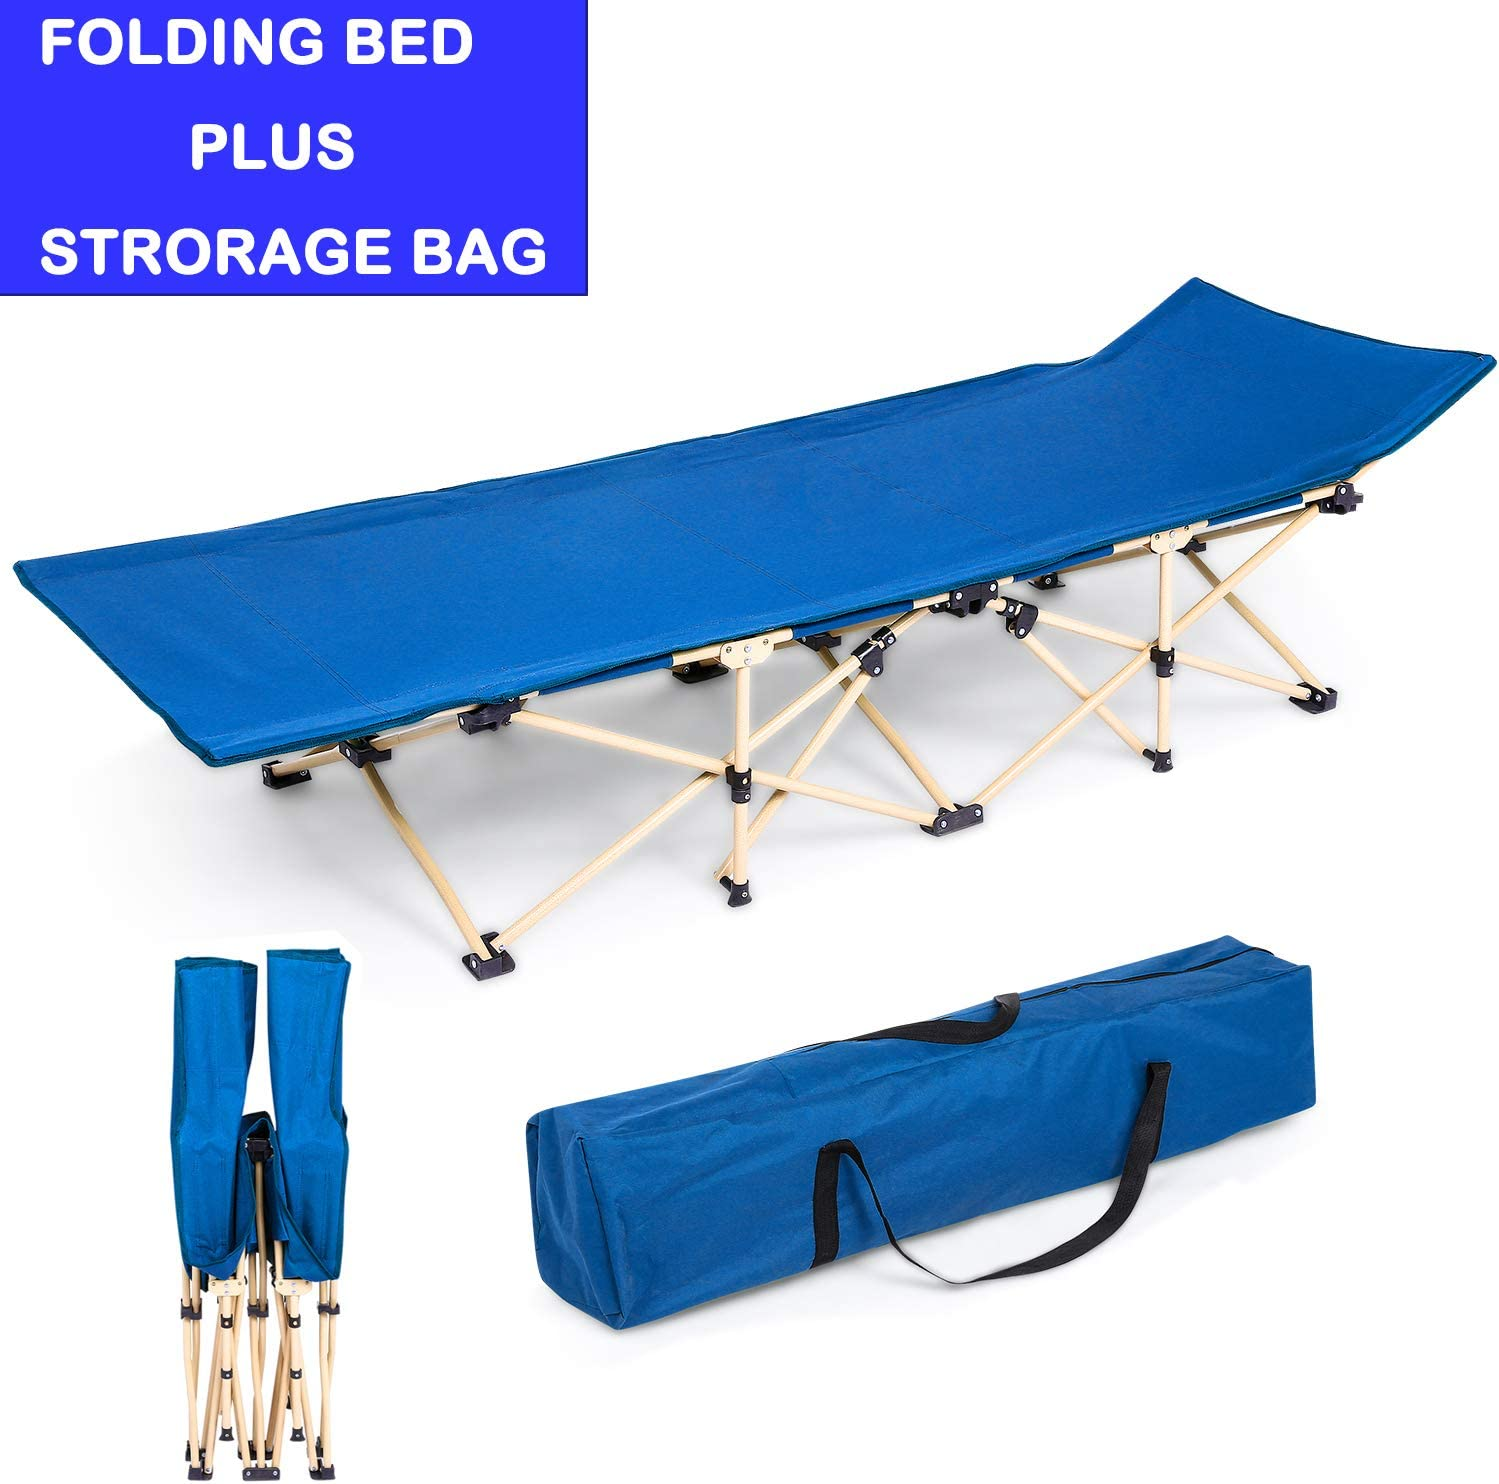 Miageek US Stock Cots Bed for Sleeping Beach Yard Pool Folding Reclining Adjustable Chaise Lounge Chair Outdoor Recliner Patio Sun Loungers